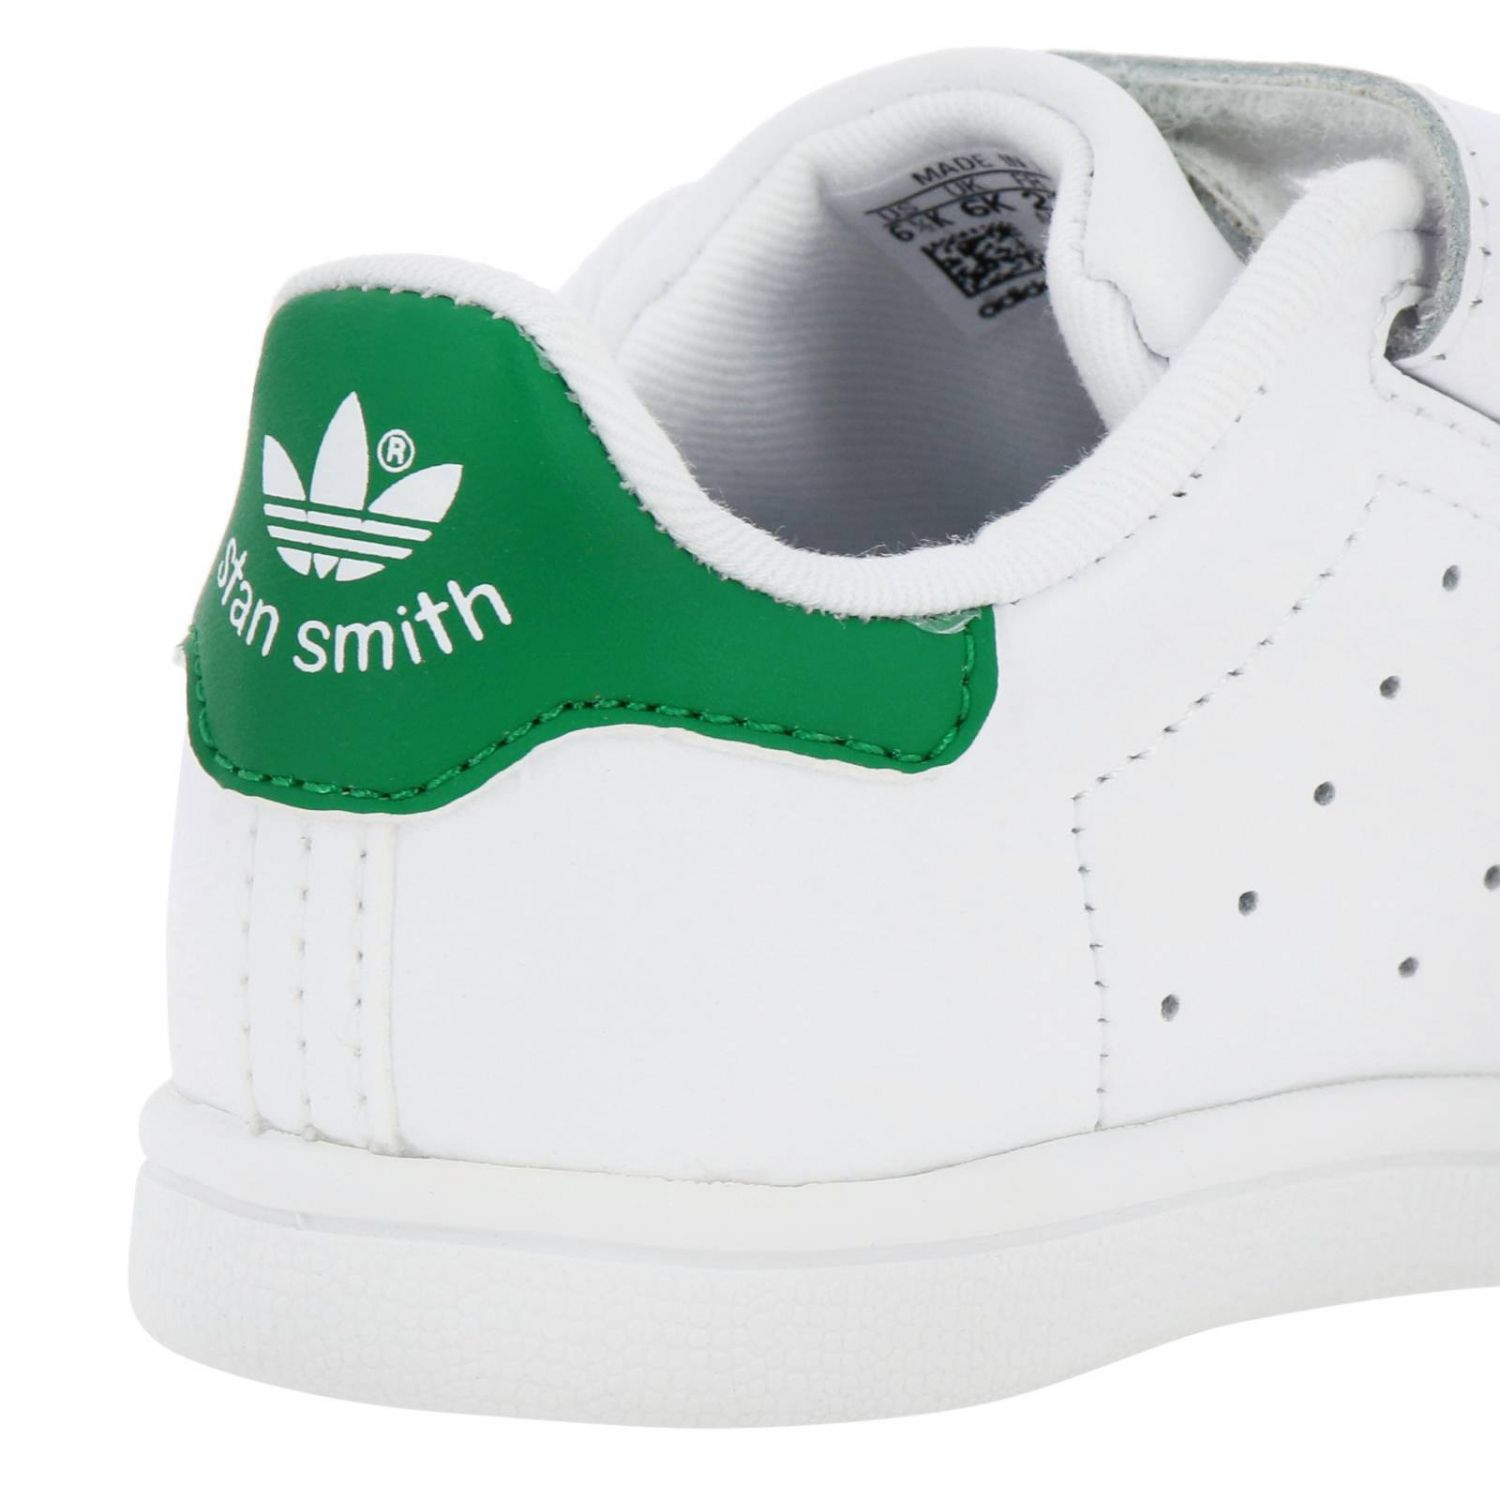 Stan Smith Adidas Originals Sneakers in smooth leather with colored heel white 4